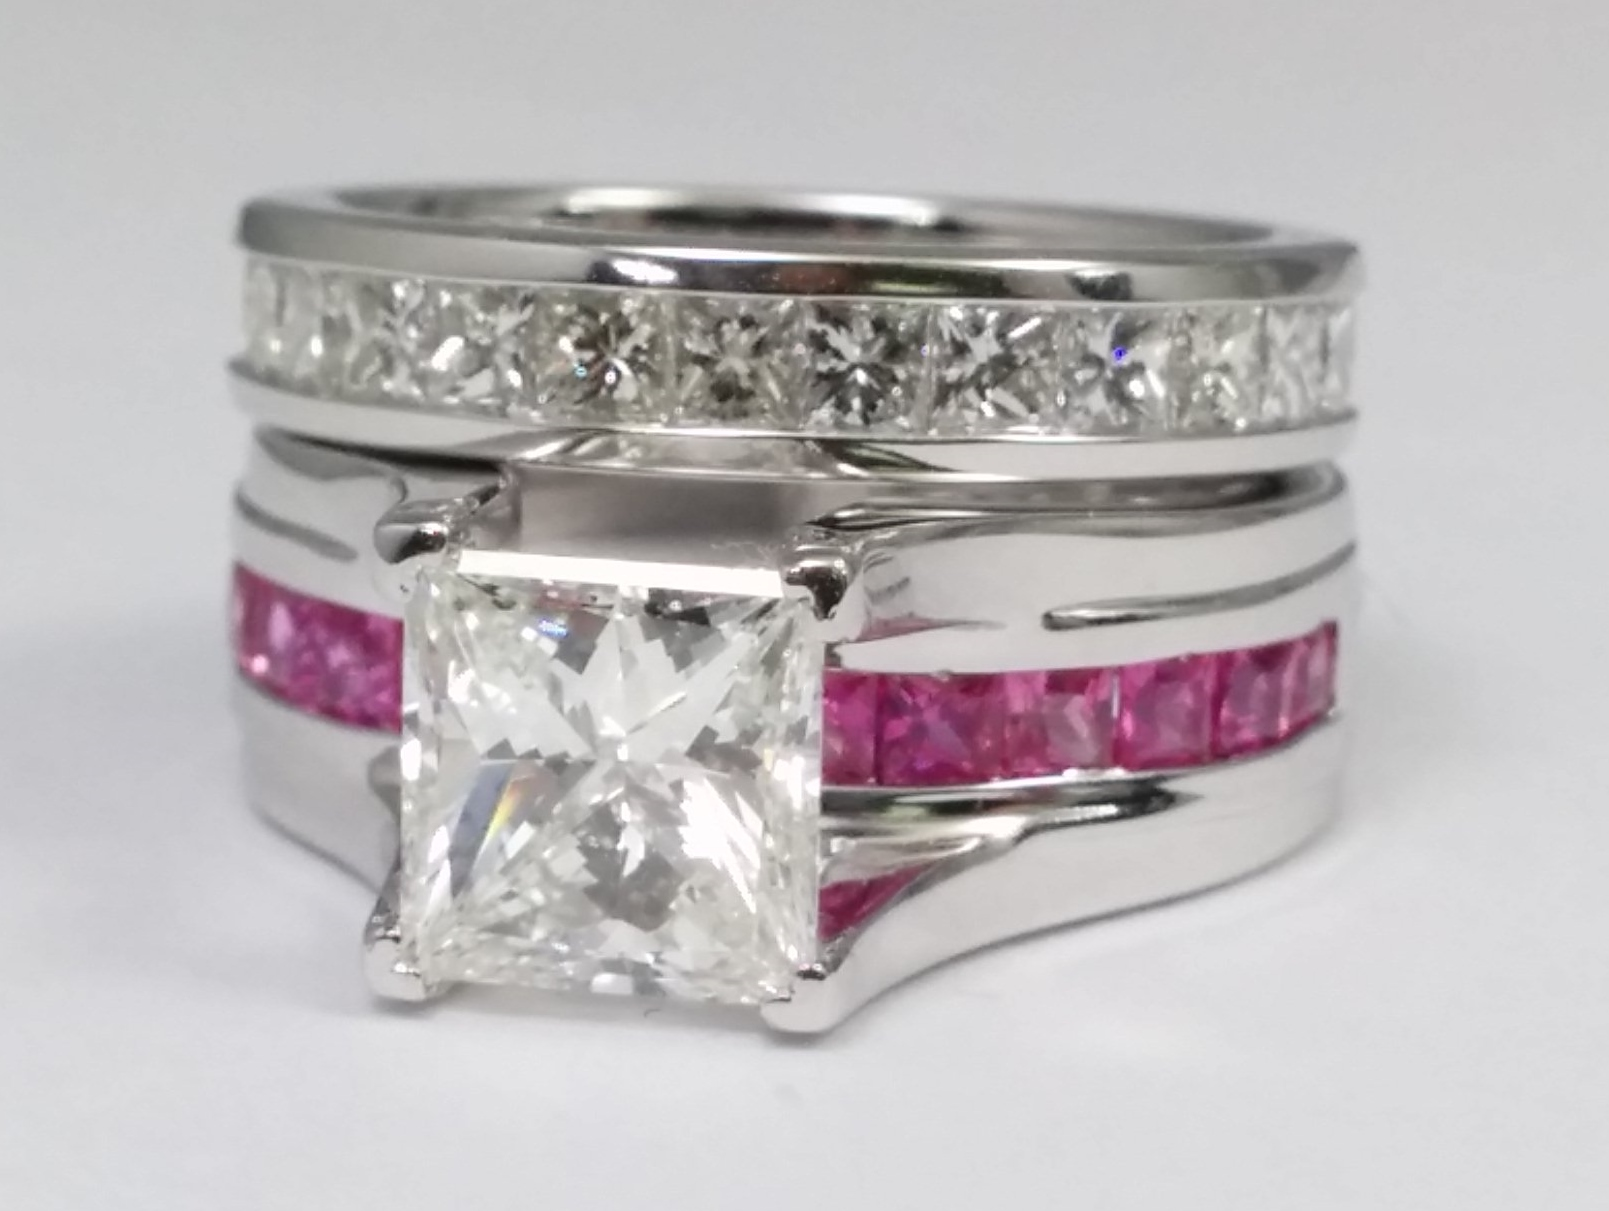 Princess Cut Diamond Bridge Engagement Ring with Pink Sapphire and Diamond Eternity Band